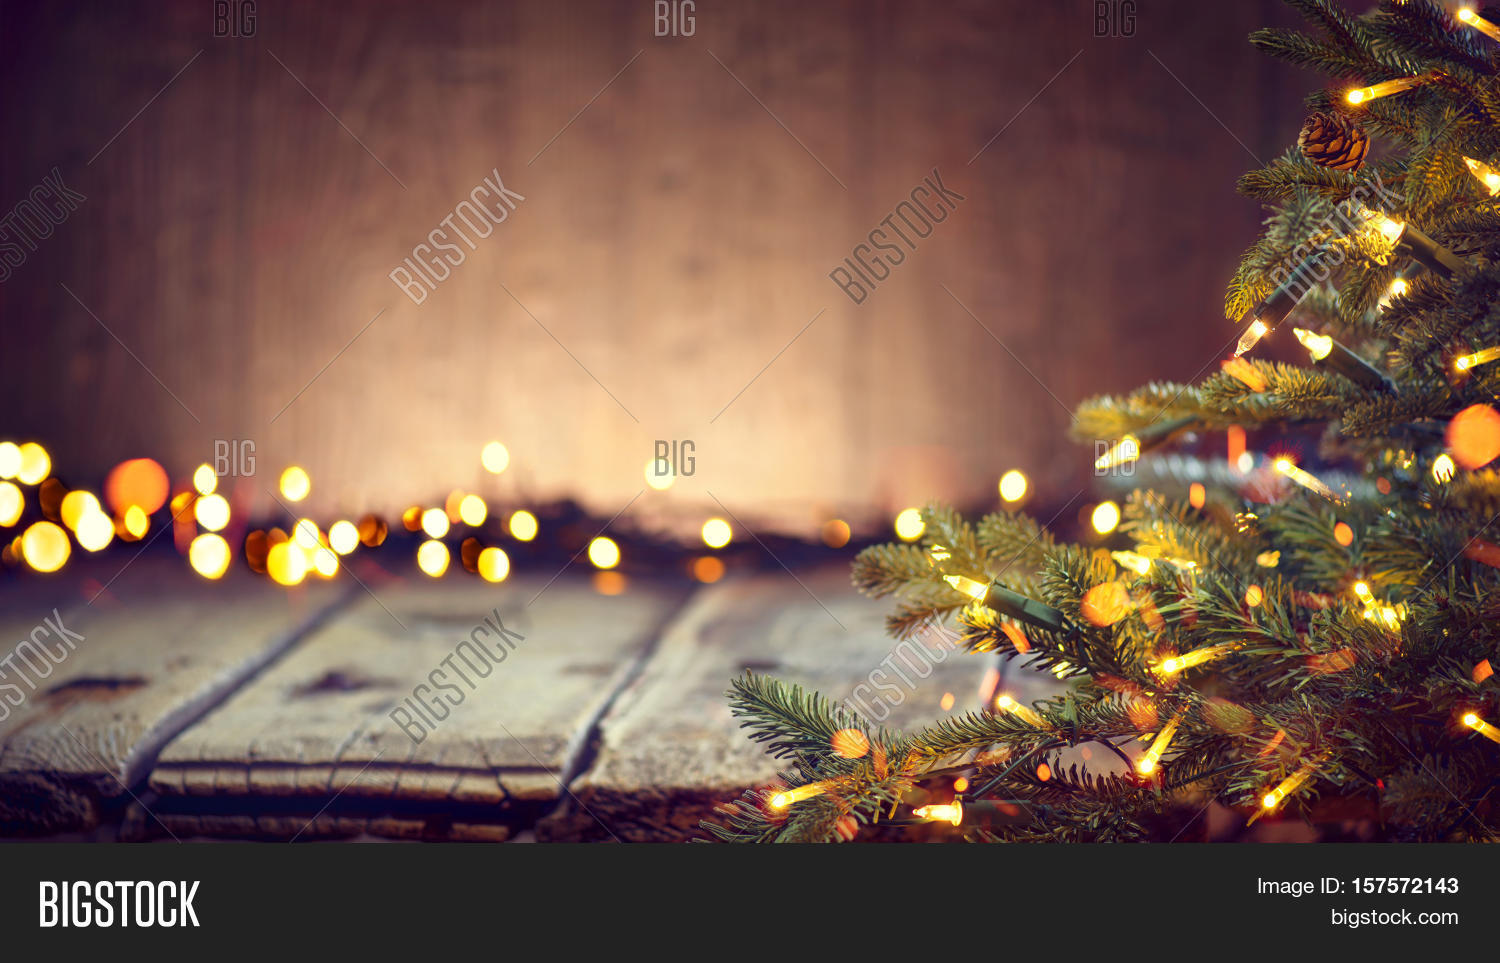 Christmas Holiday Background.Christmas Holiday Image Photo Free Trial Bigstock